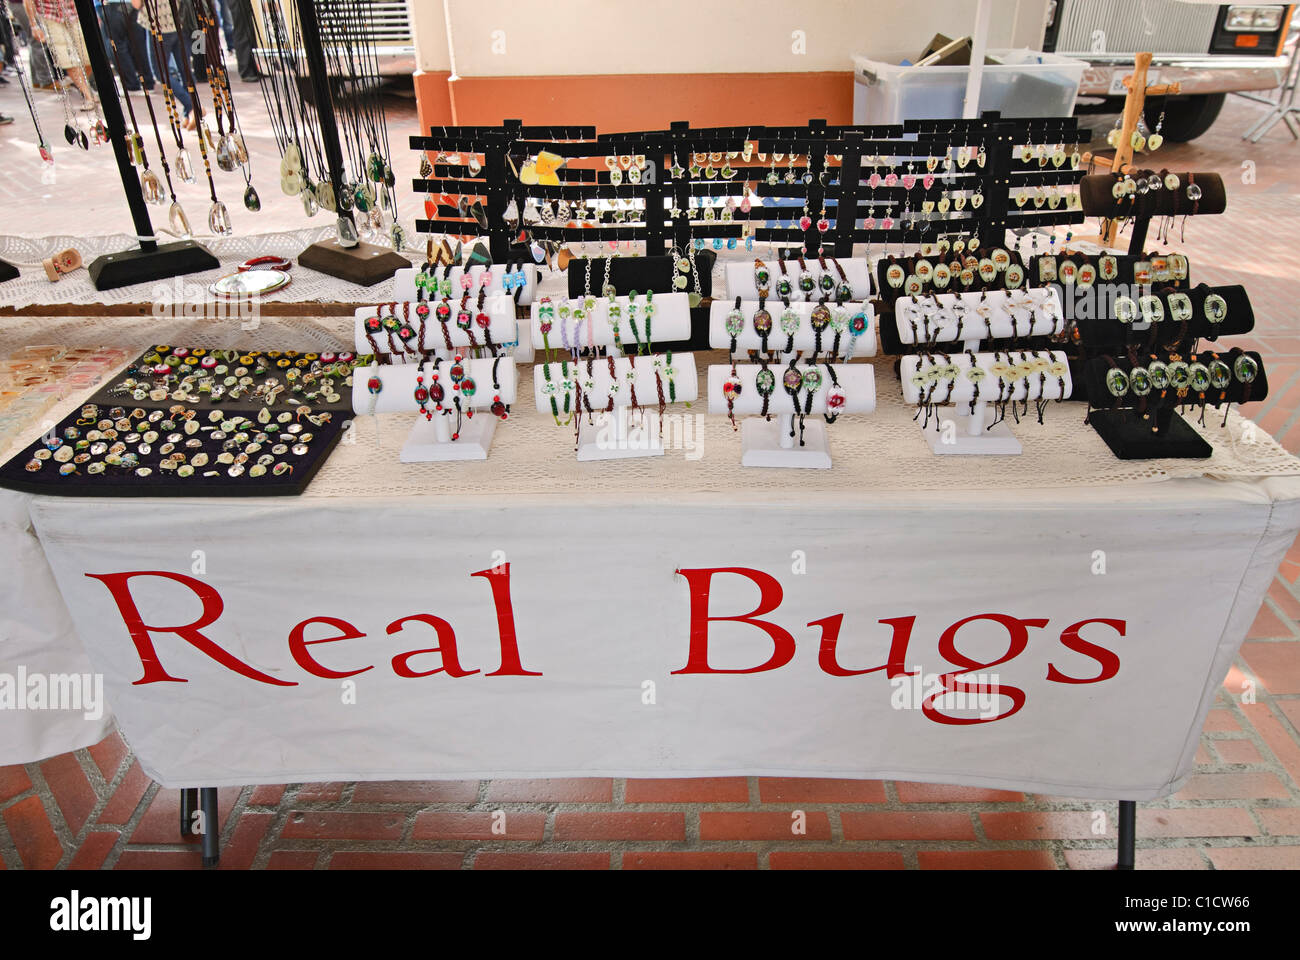 Real Bugs tent sells real insects and bugs in clear resin in many forms including jewelery and decorations. - Stock Image